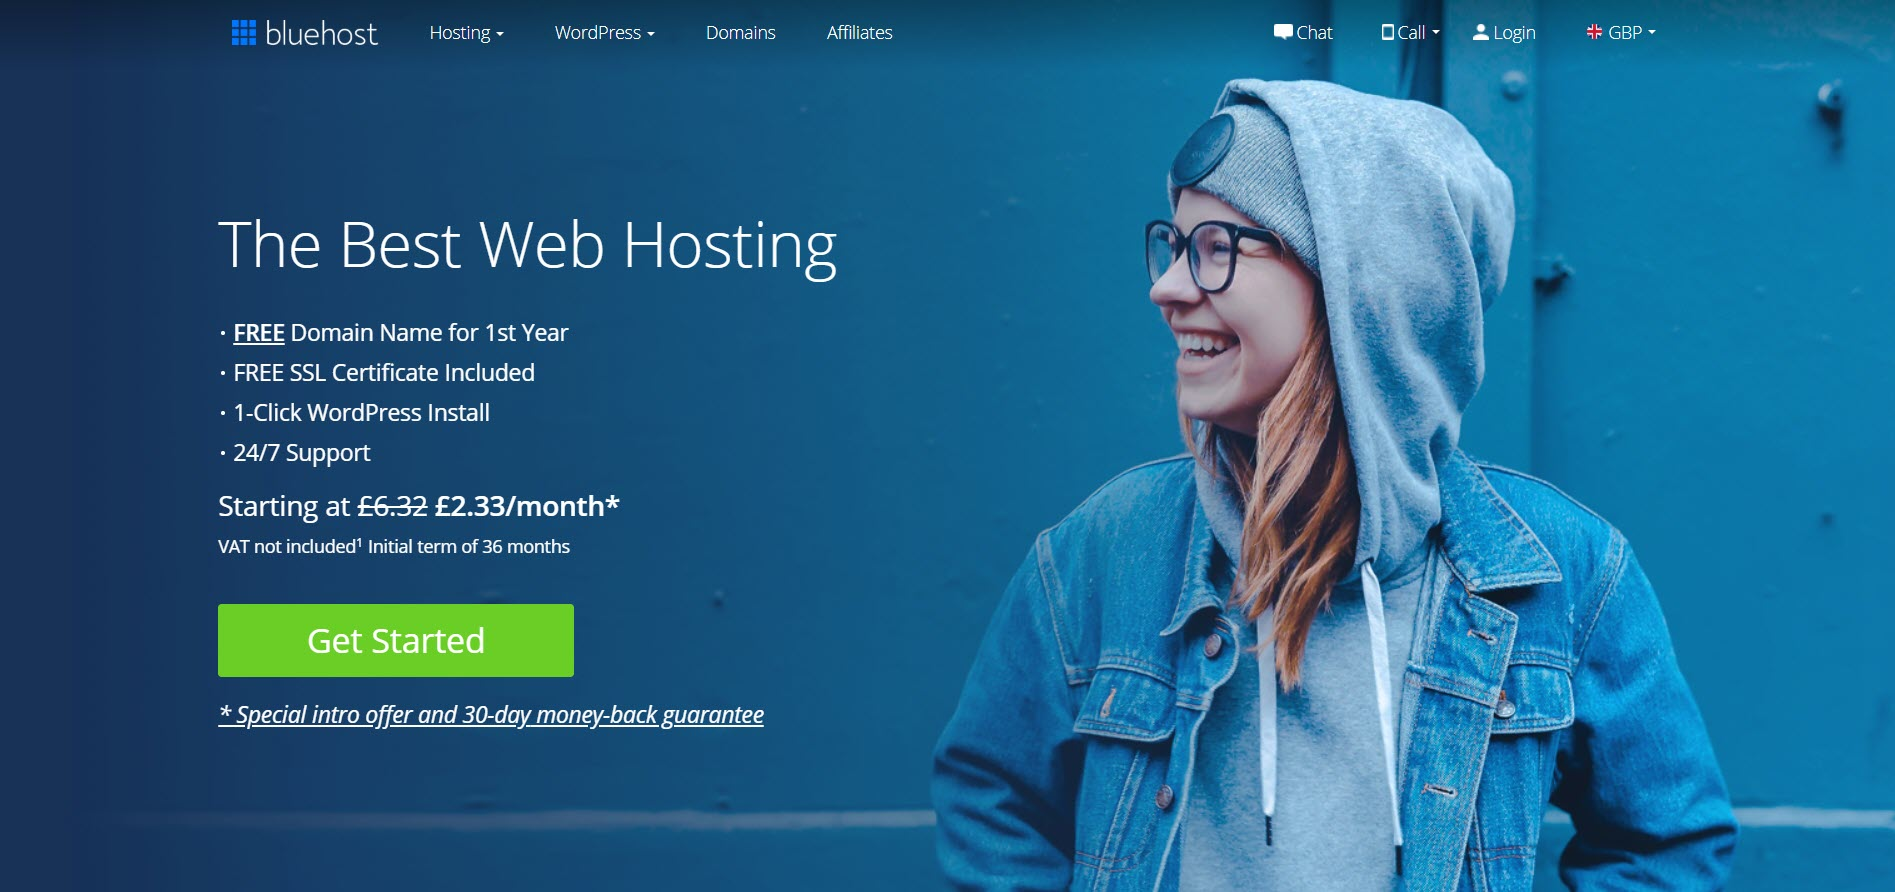 Bluehost vs HostGator - Bluehost